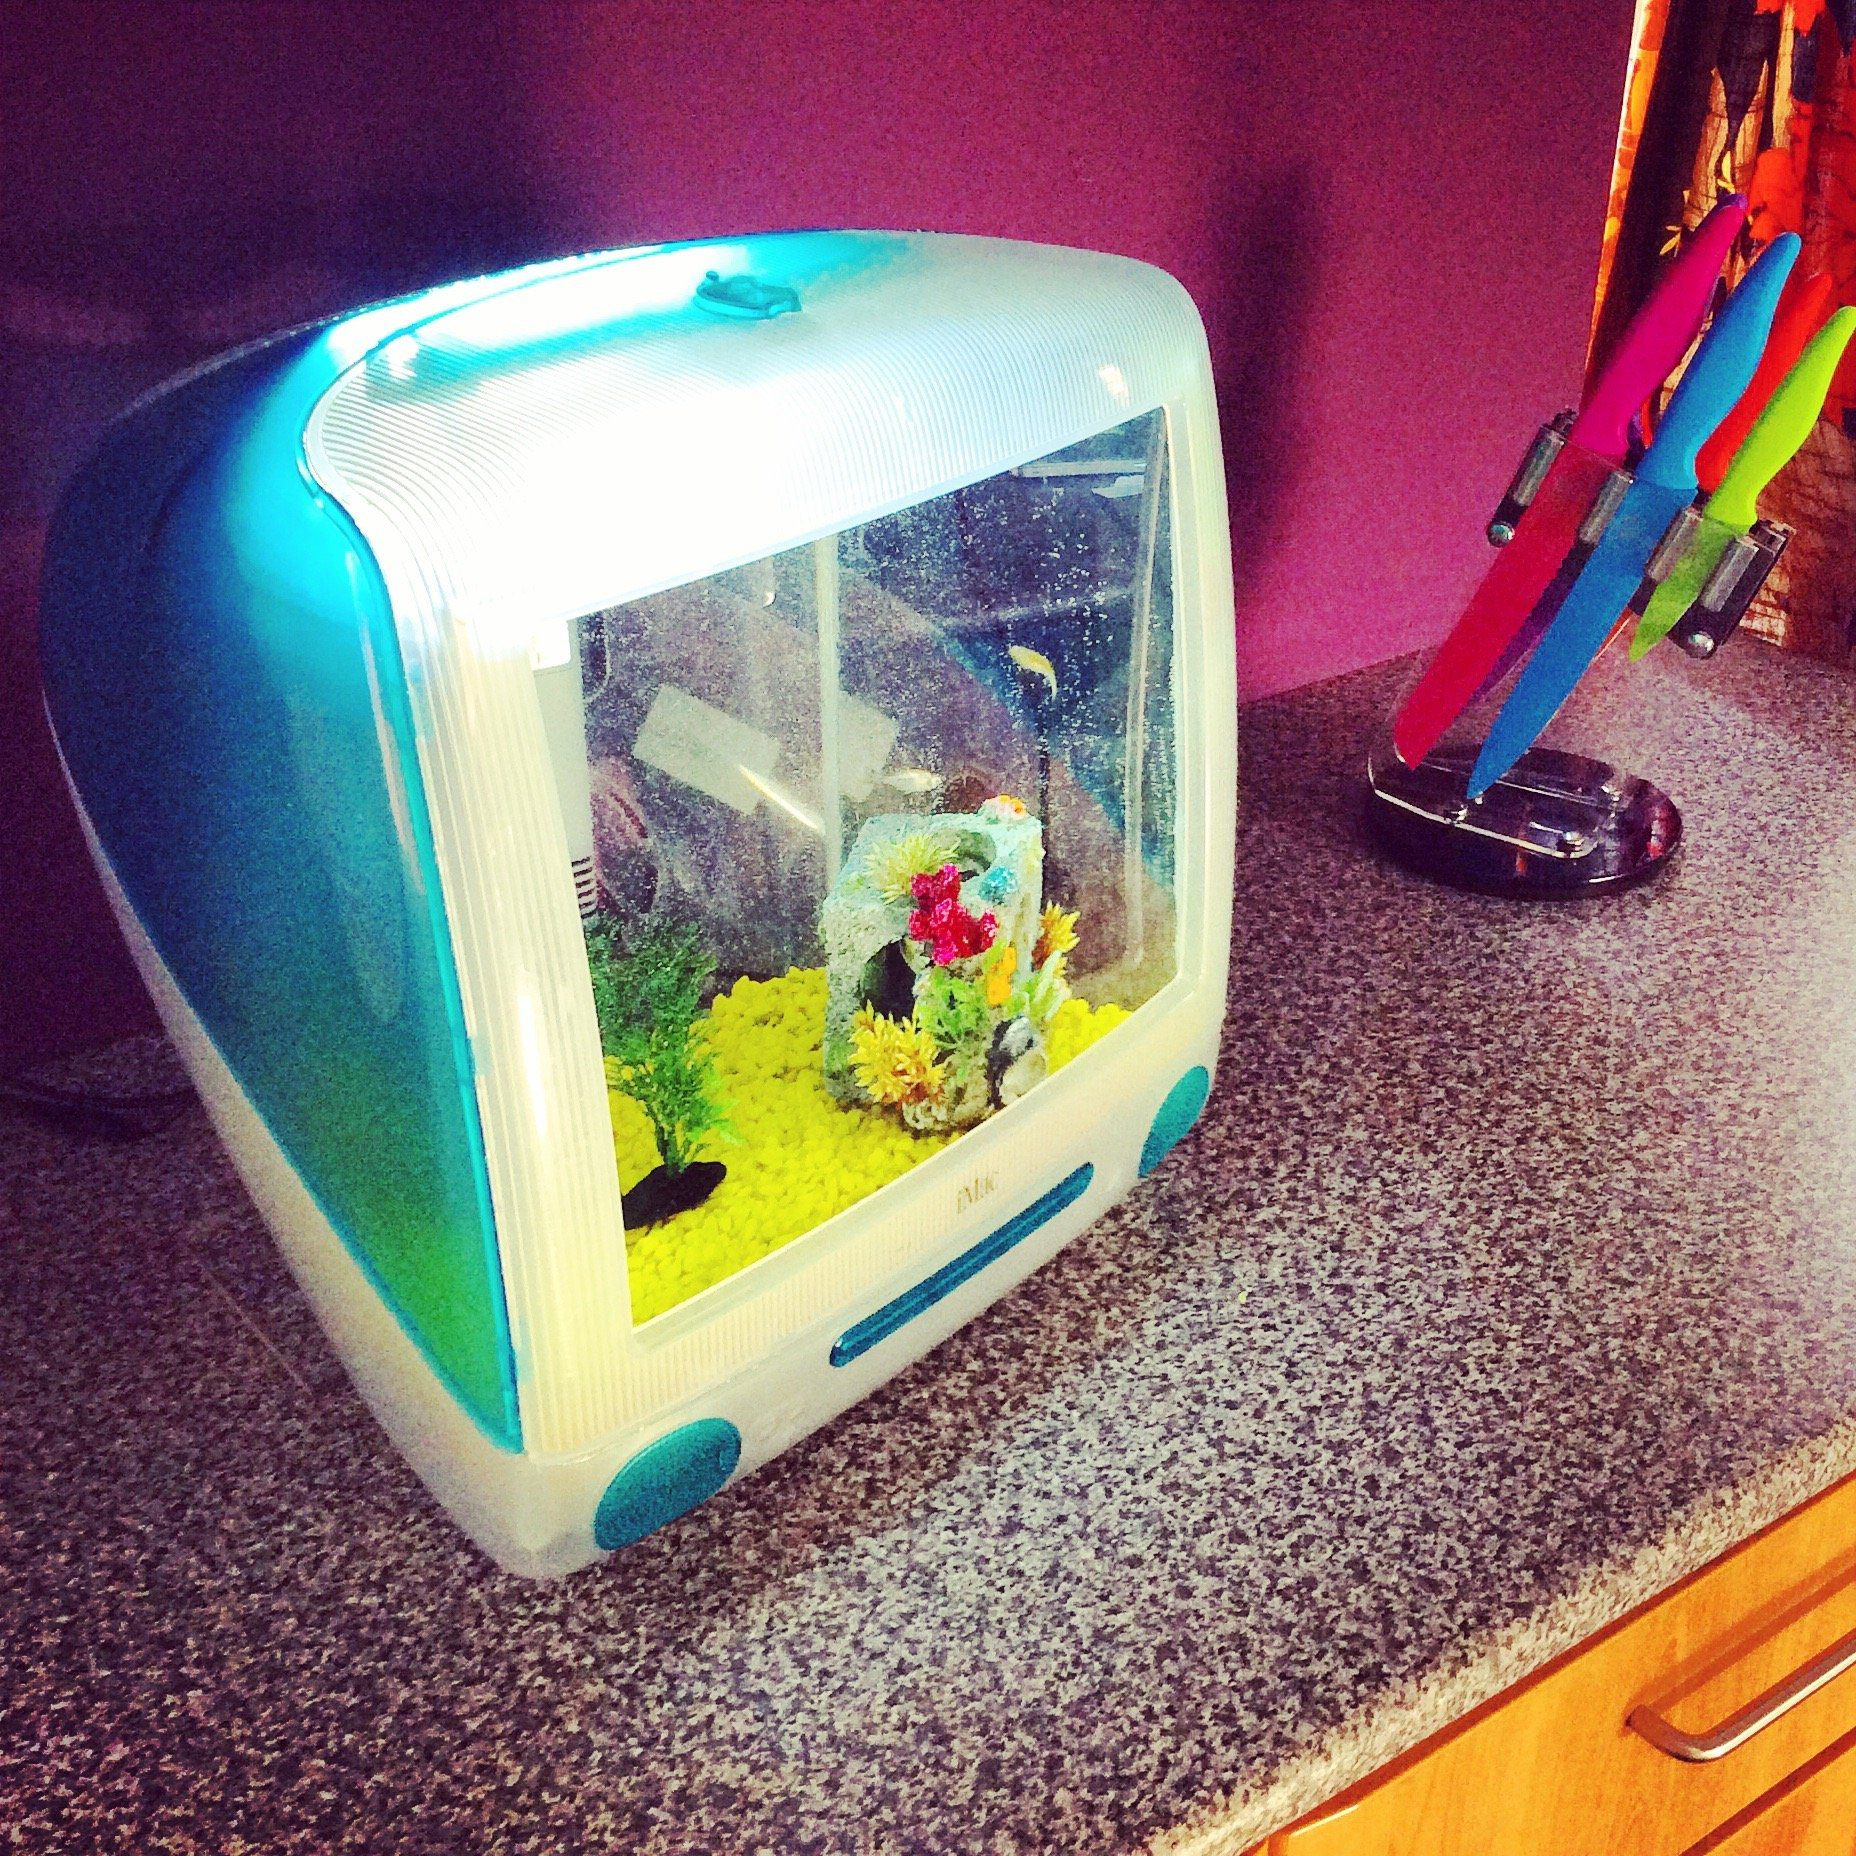 An old G3 iMac upcycled into an aquarium - the Imacquarium